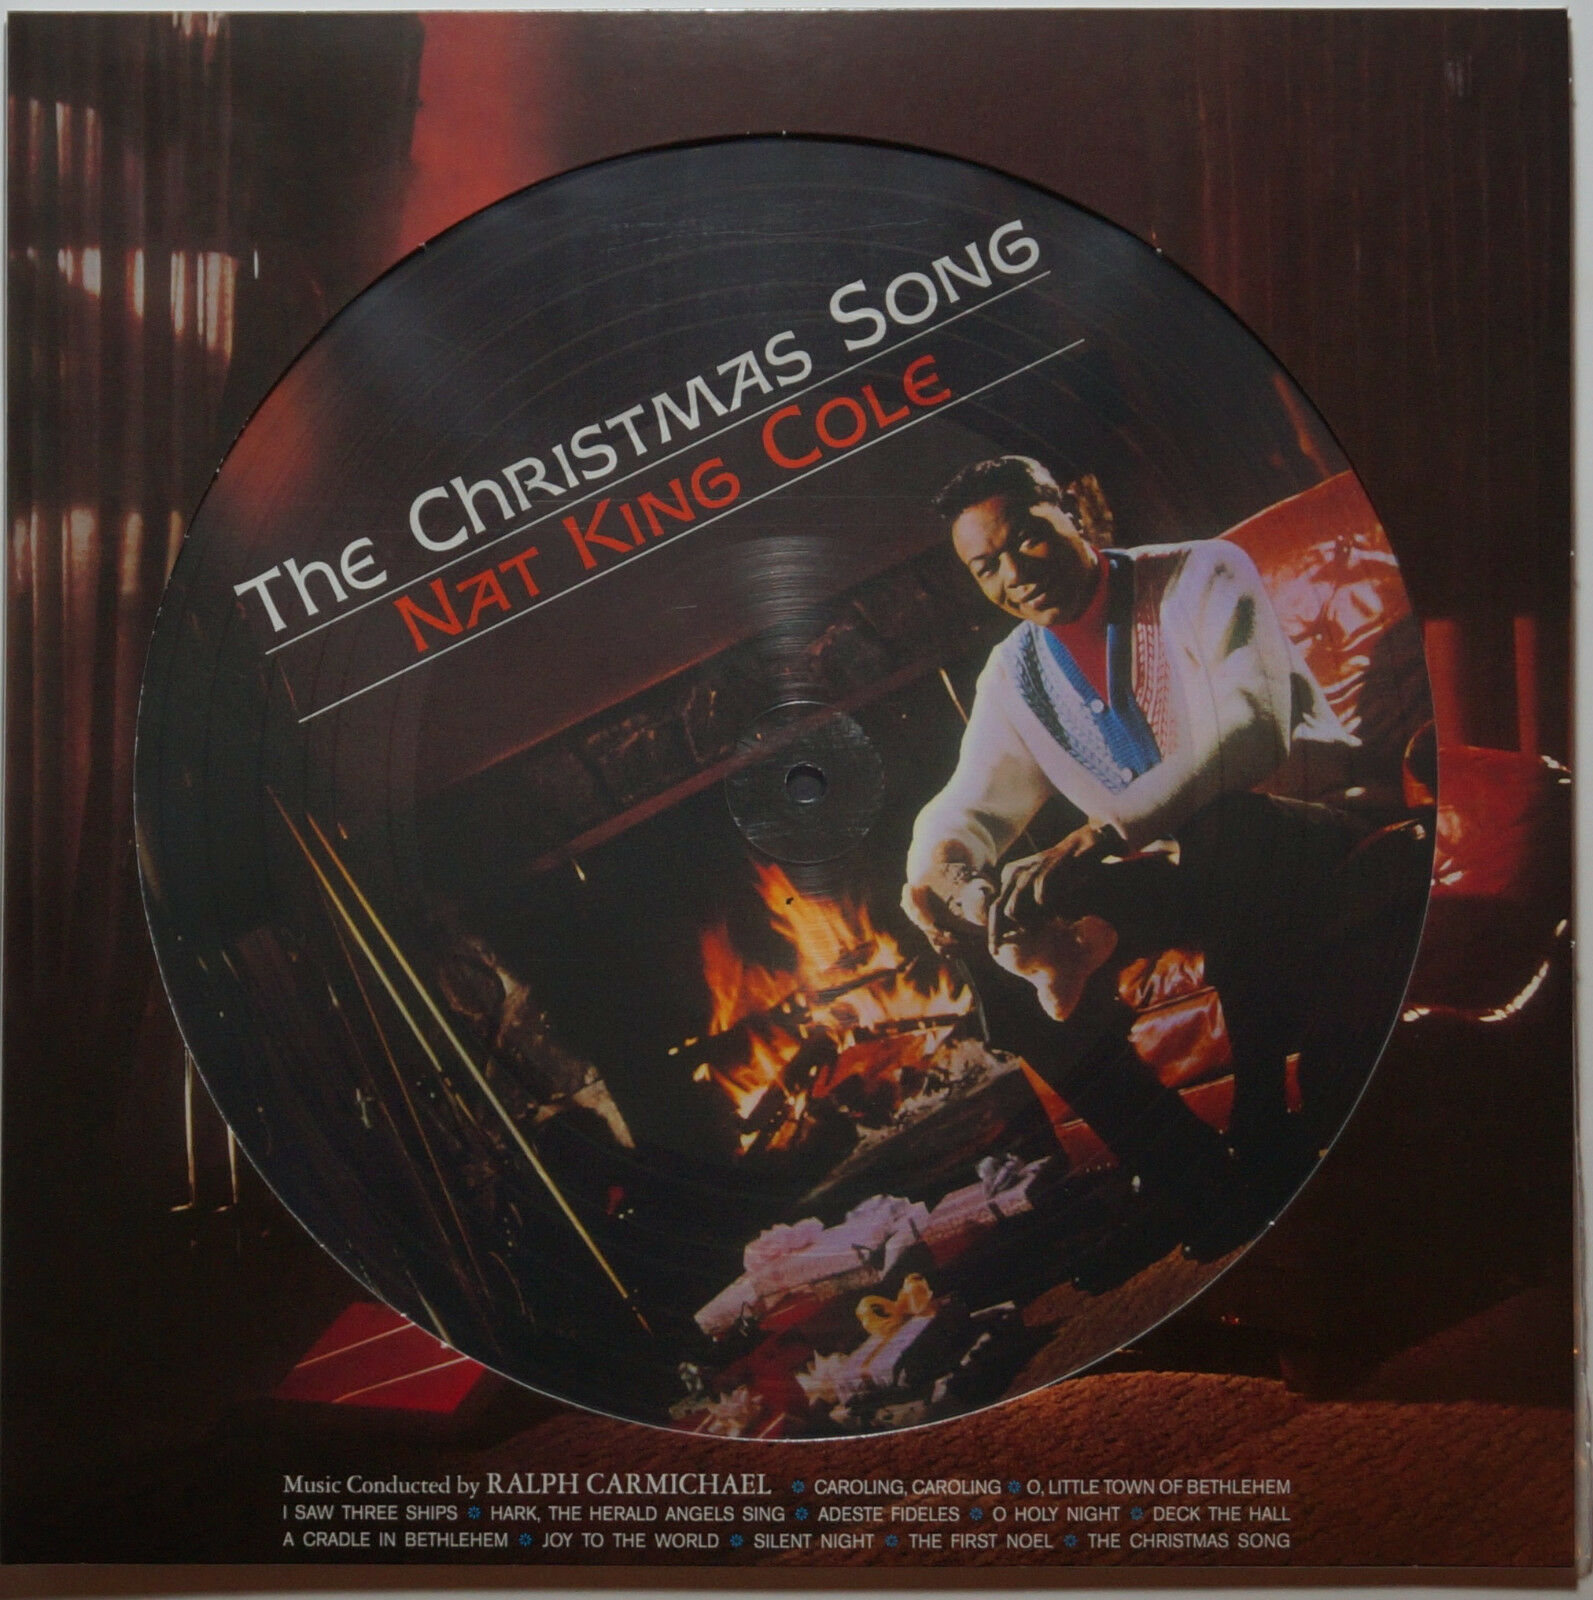 NAT KING COLE - The Christmas Song LP limited 180g picture disc ...